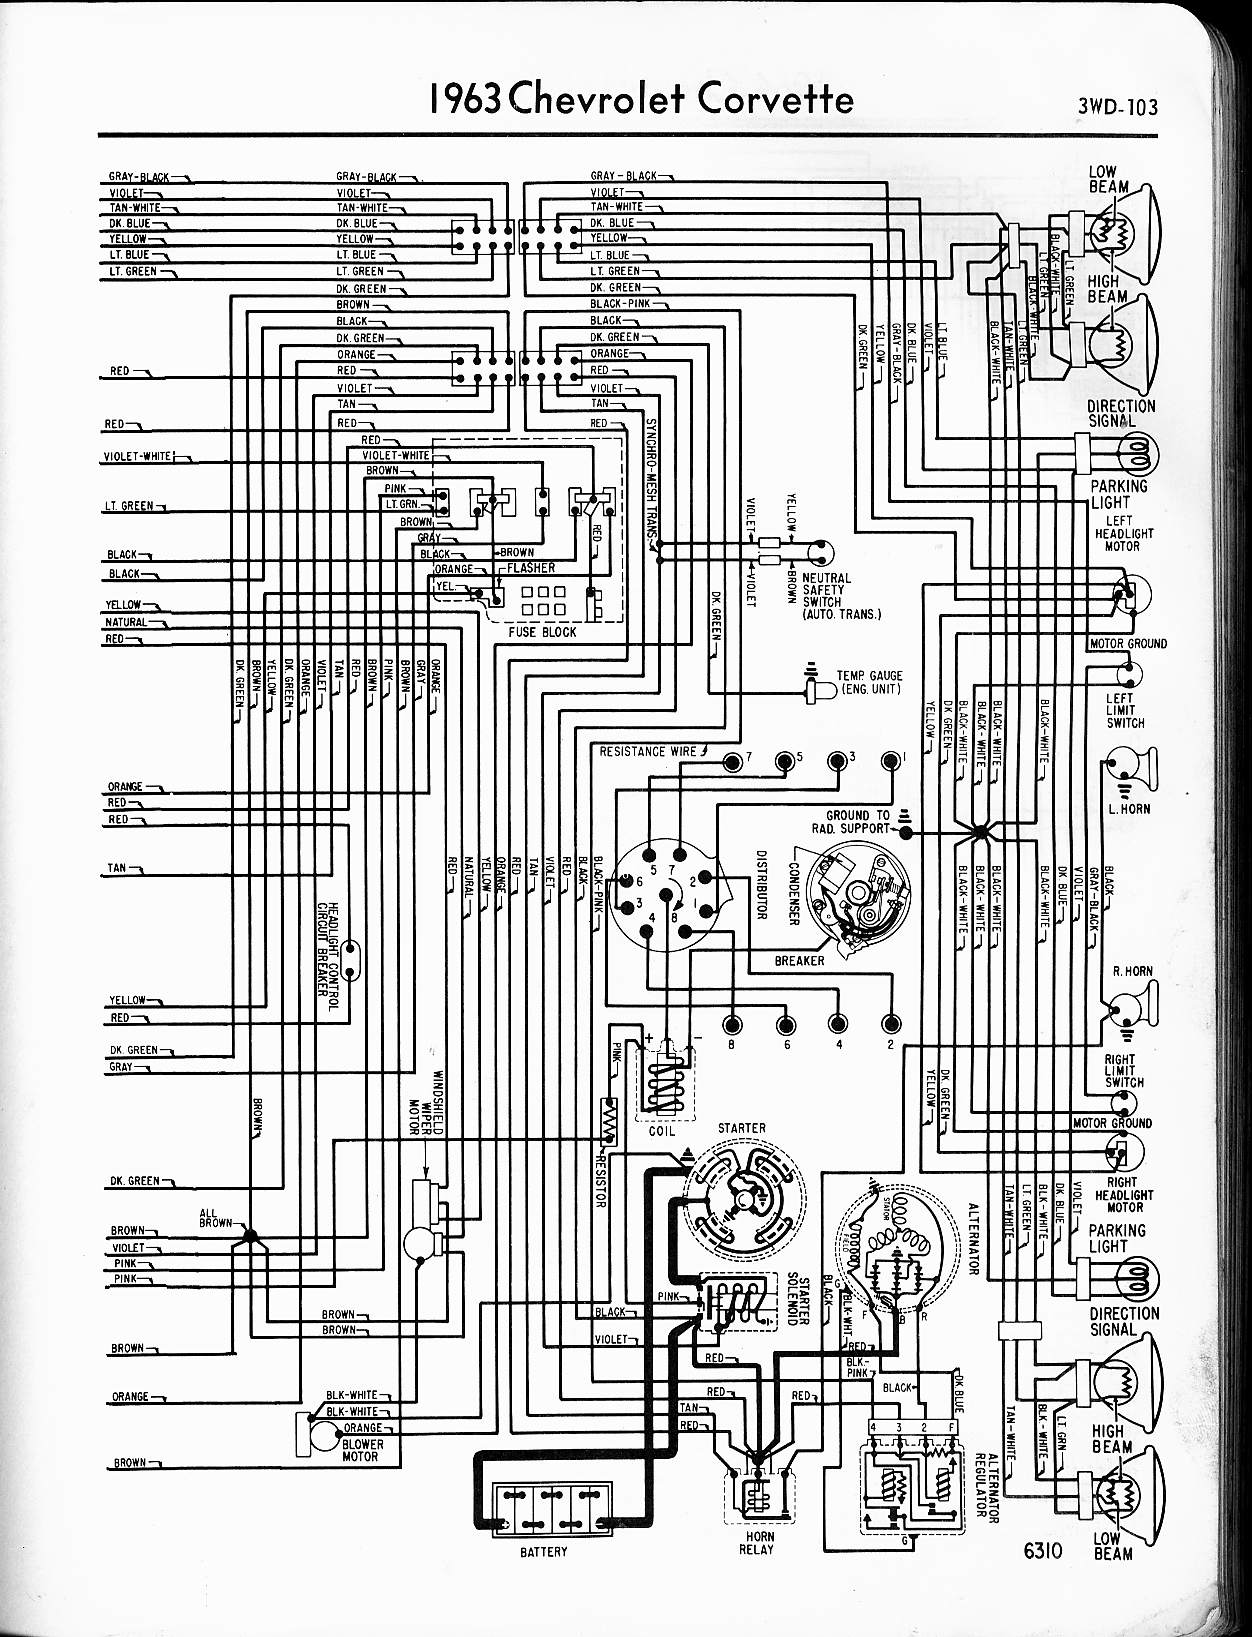 Astonishing 74 Chevy Wiring Diagram Wiring Library Wiring 101 Orsalhahutechinfo